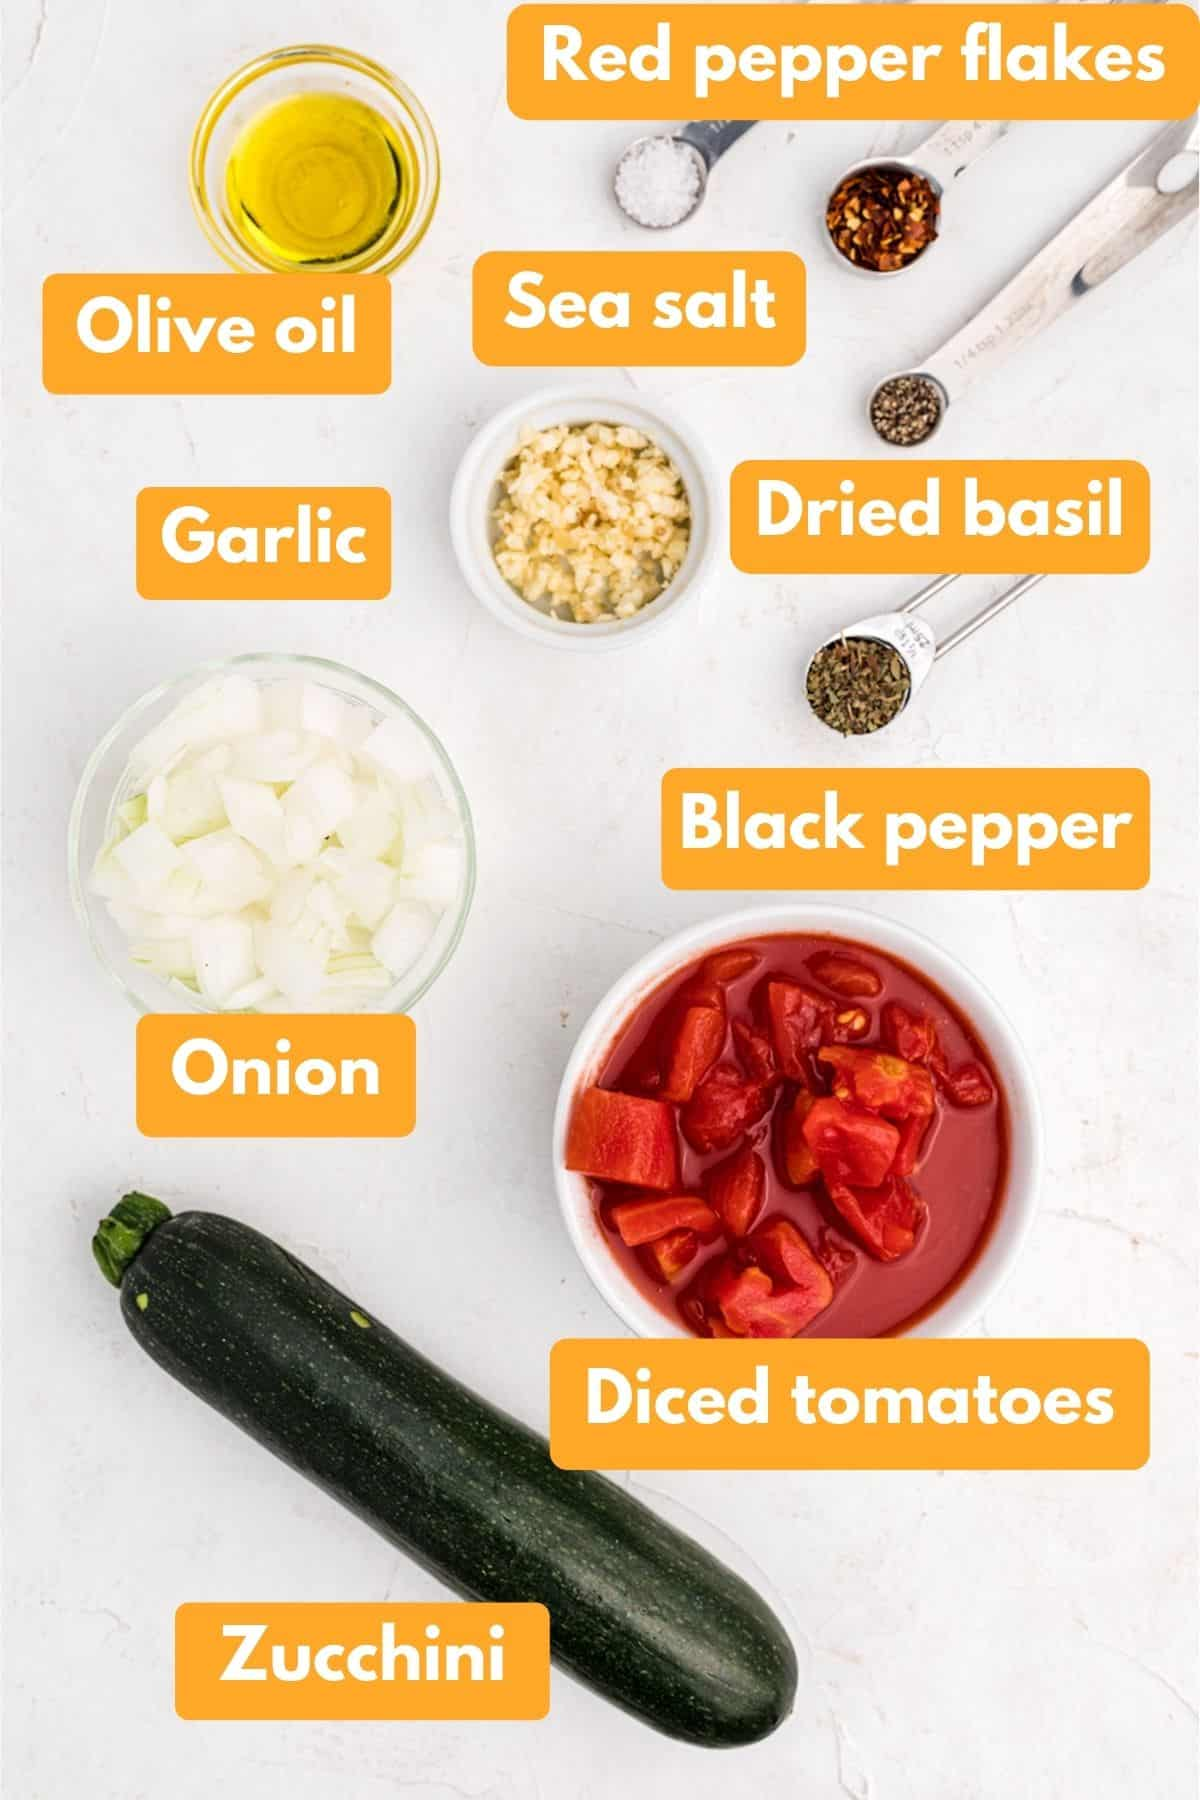 Ingredients for instant pot tomatoes and zucchini